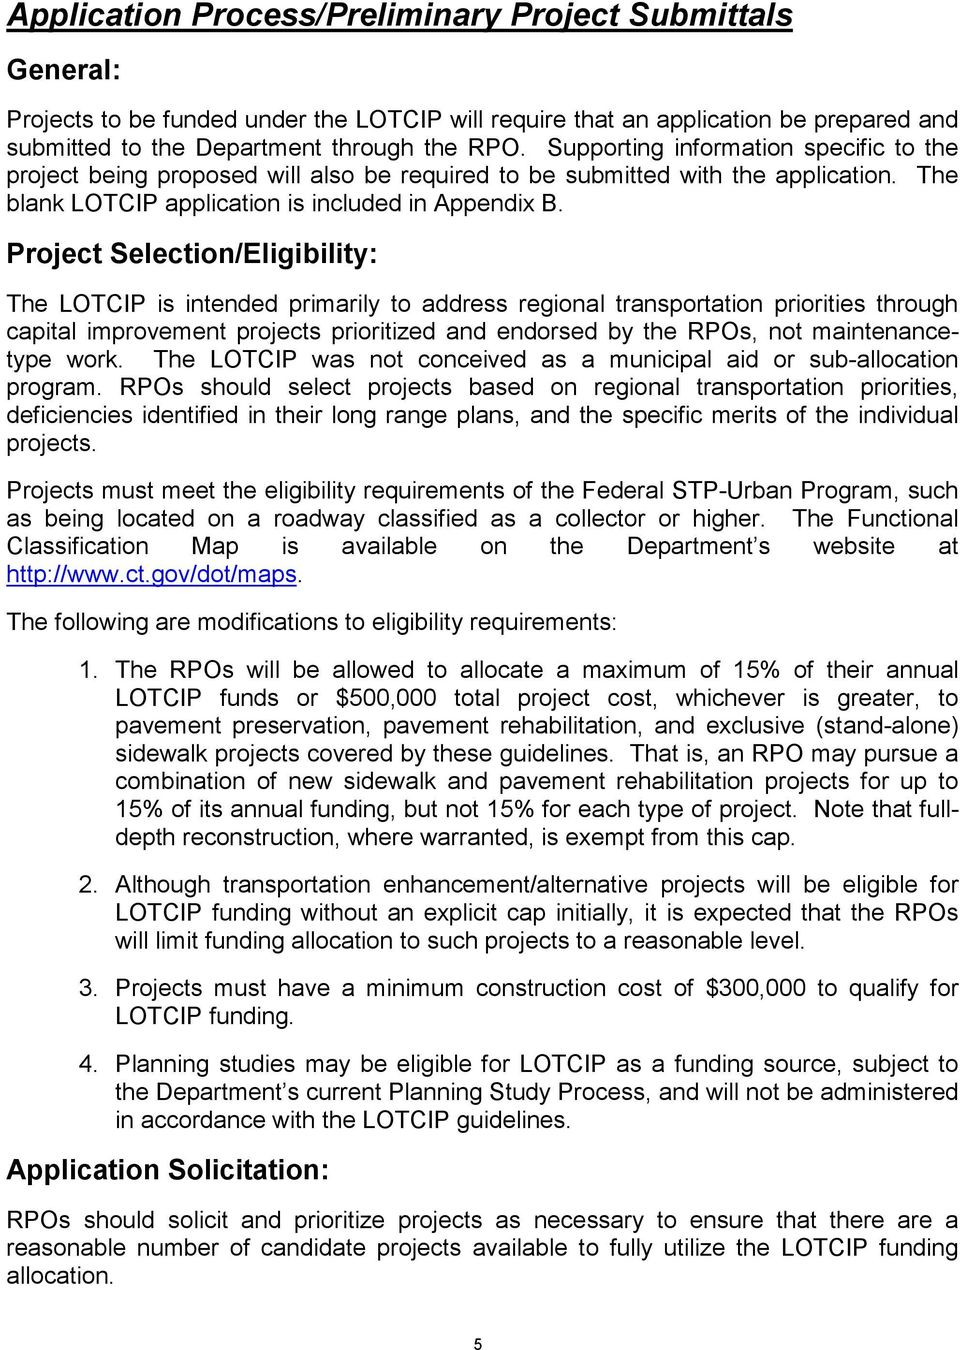 Project Selection/Eligibility: The LOTCIP is intended primarily to address regional transportation priorities through capital improvement projects prioritized and endorsed by the RPOs, not